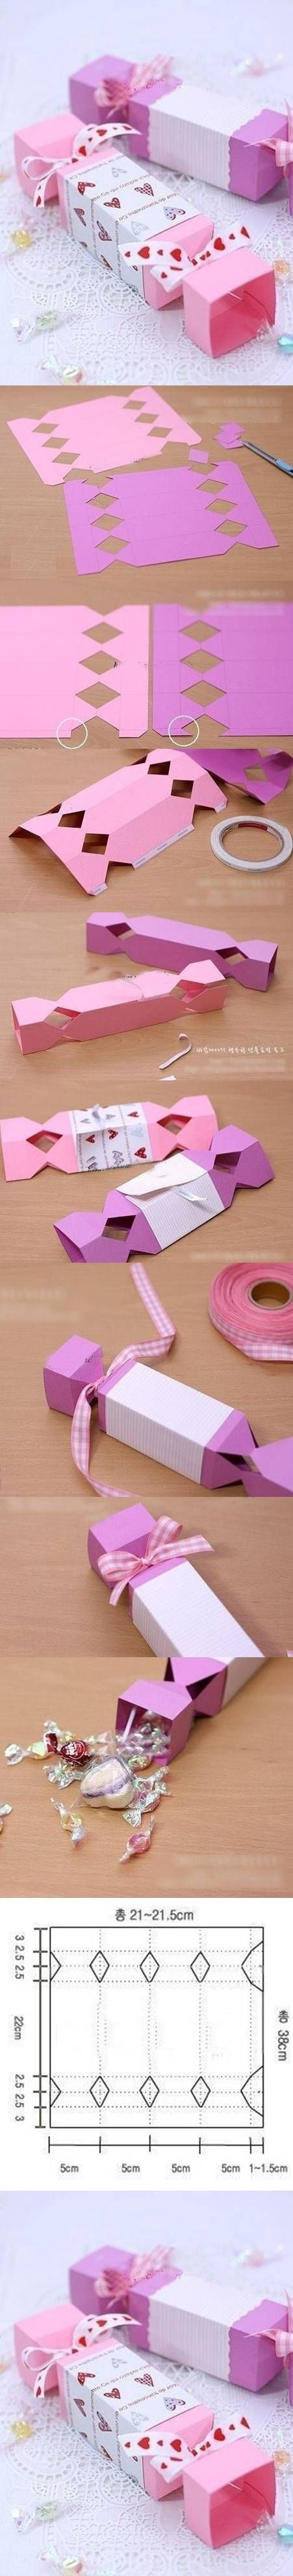 DIY Cute Candy Gift Box girly cute pink diy diy ideas diy crafts do it yourself crafty candy gift box